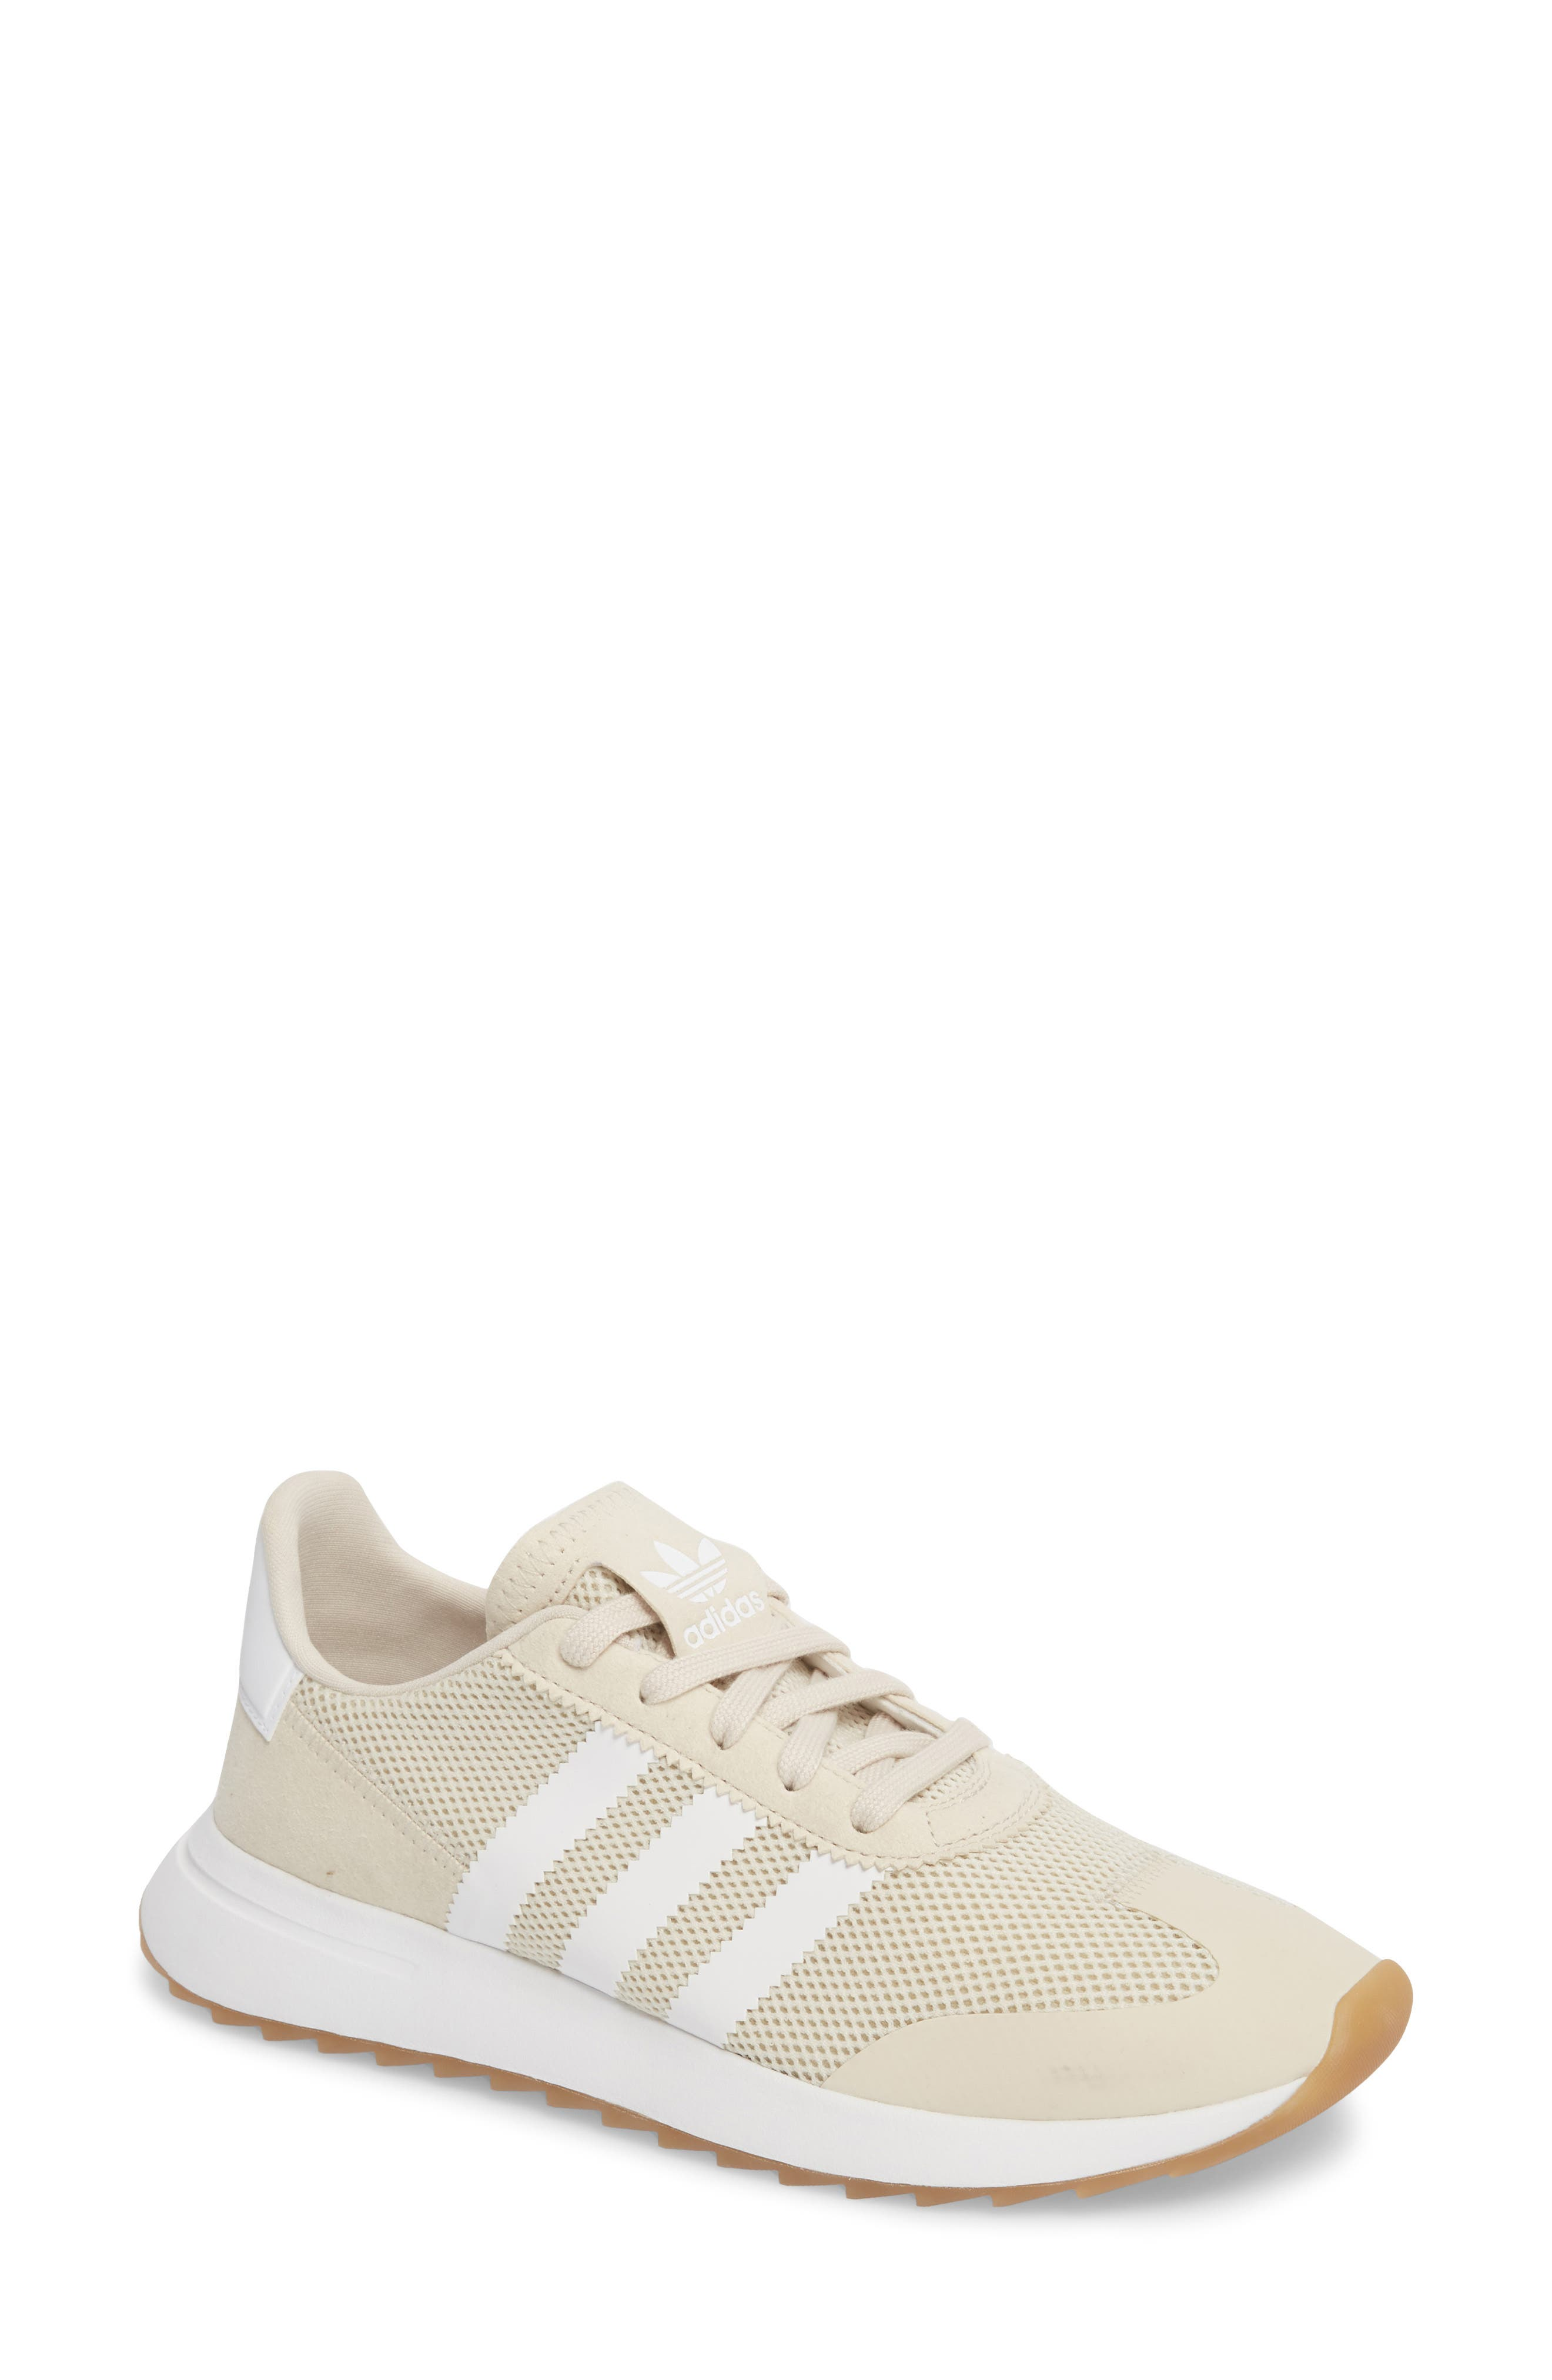 Flashback Sneaker,                         Main,                         color, CLEAR BROWN/ BROWN/ WHITE